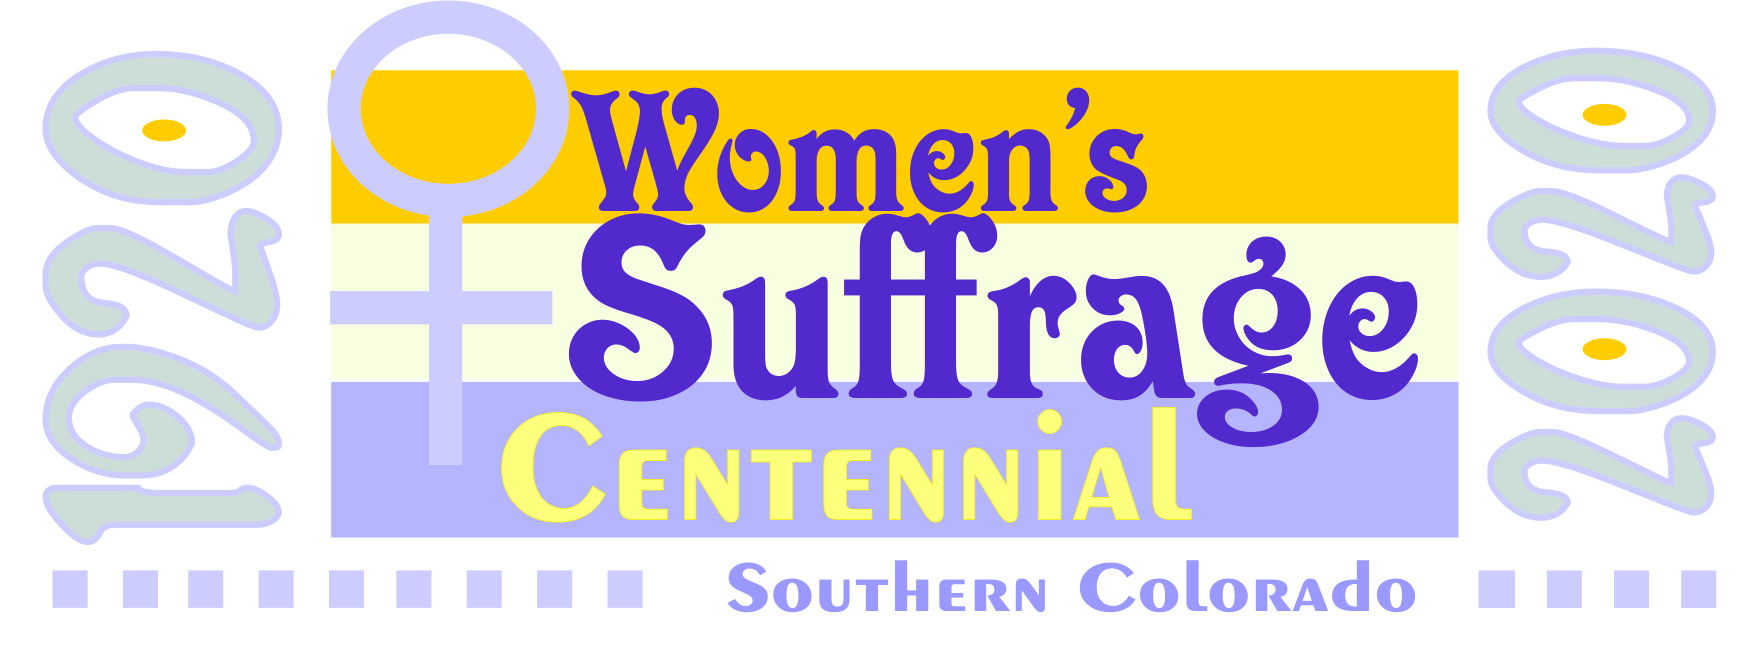 Women's Suffrage Centennial - Southern Colorado